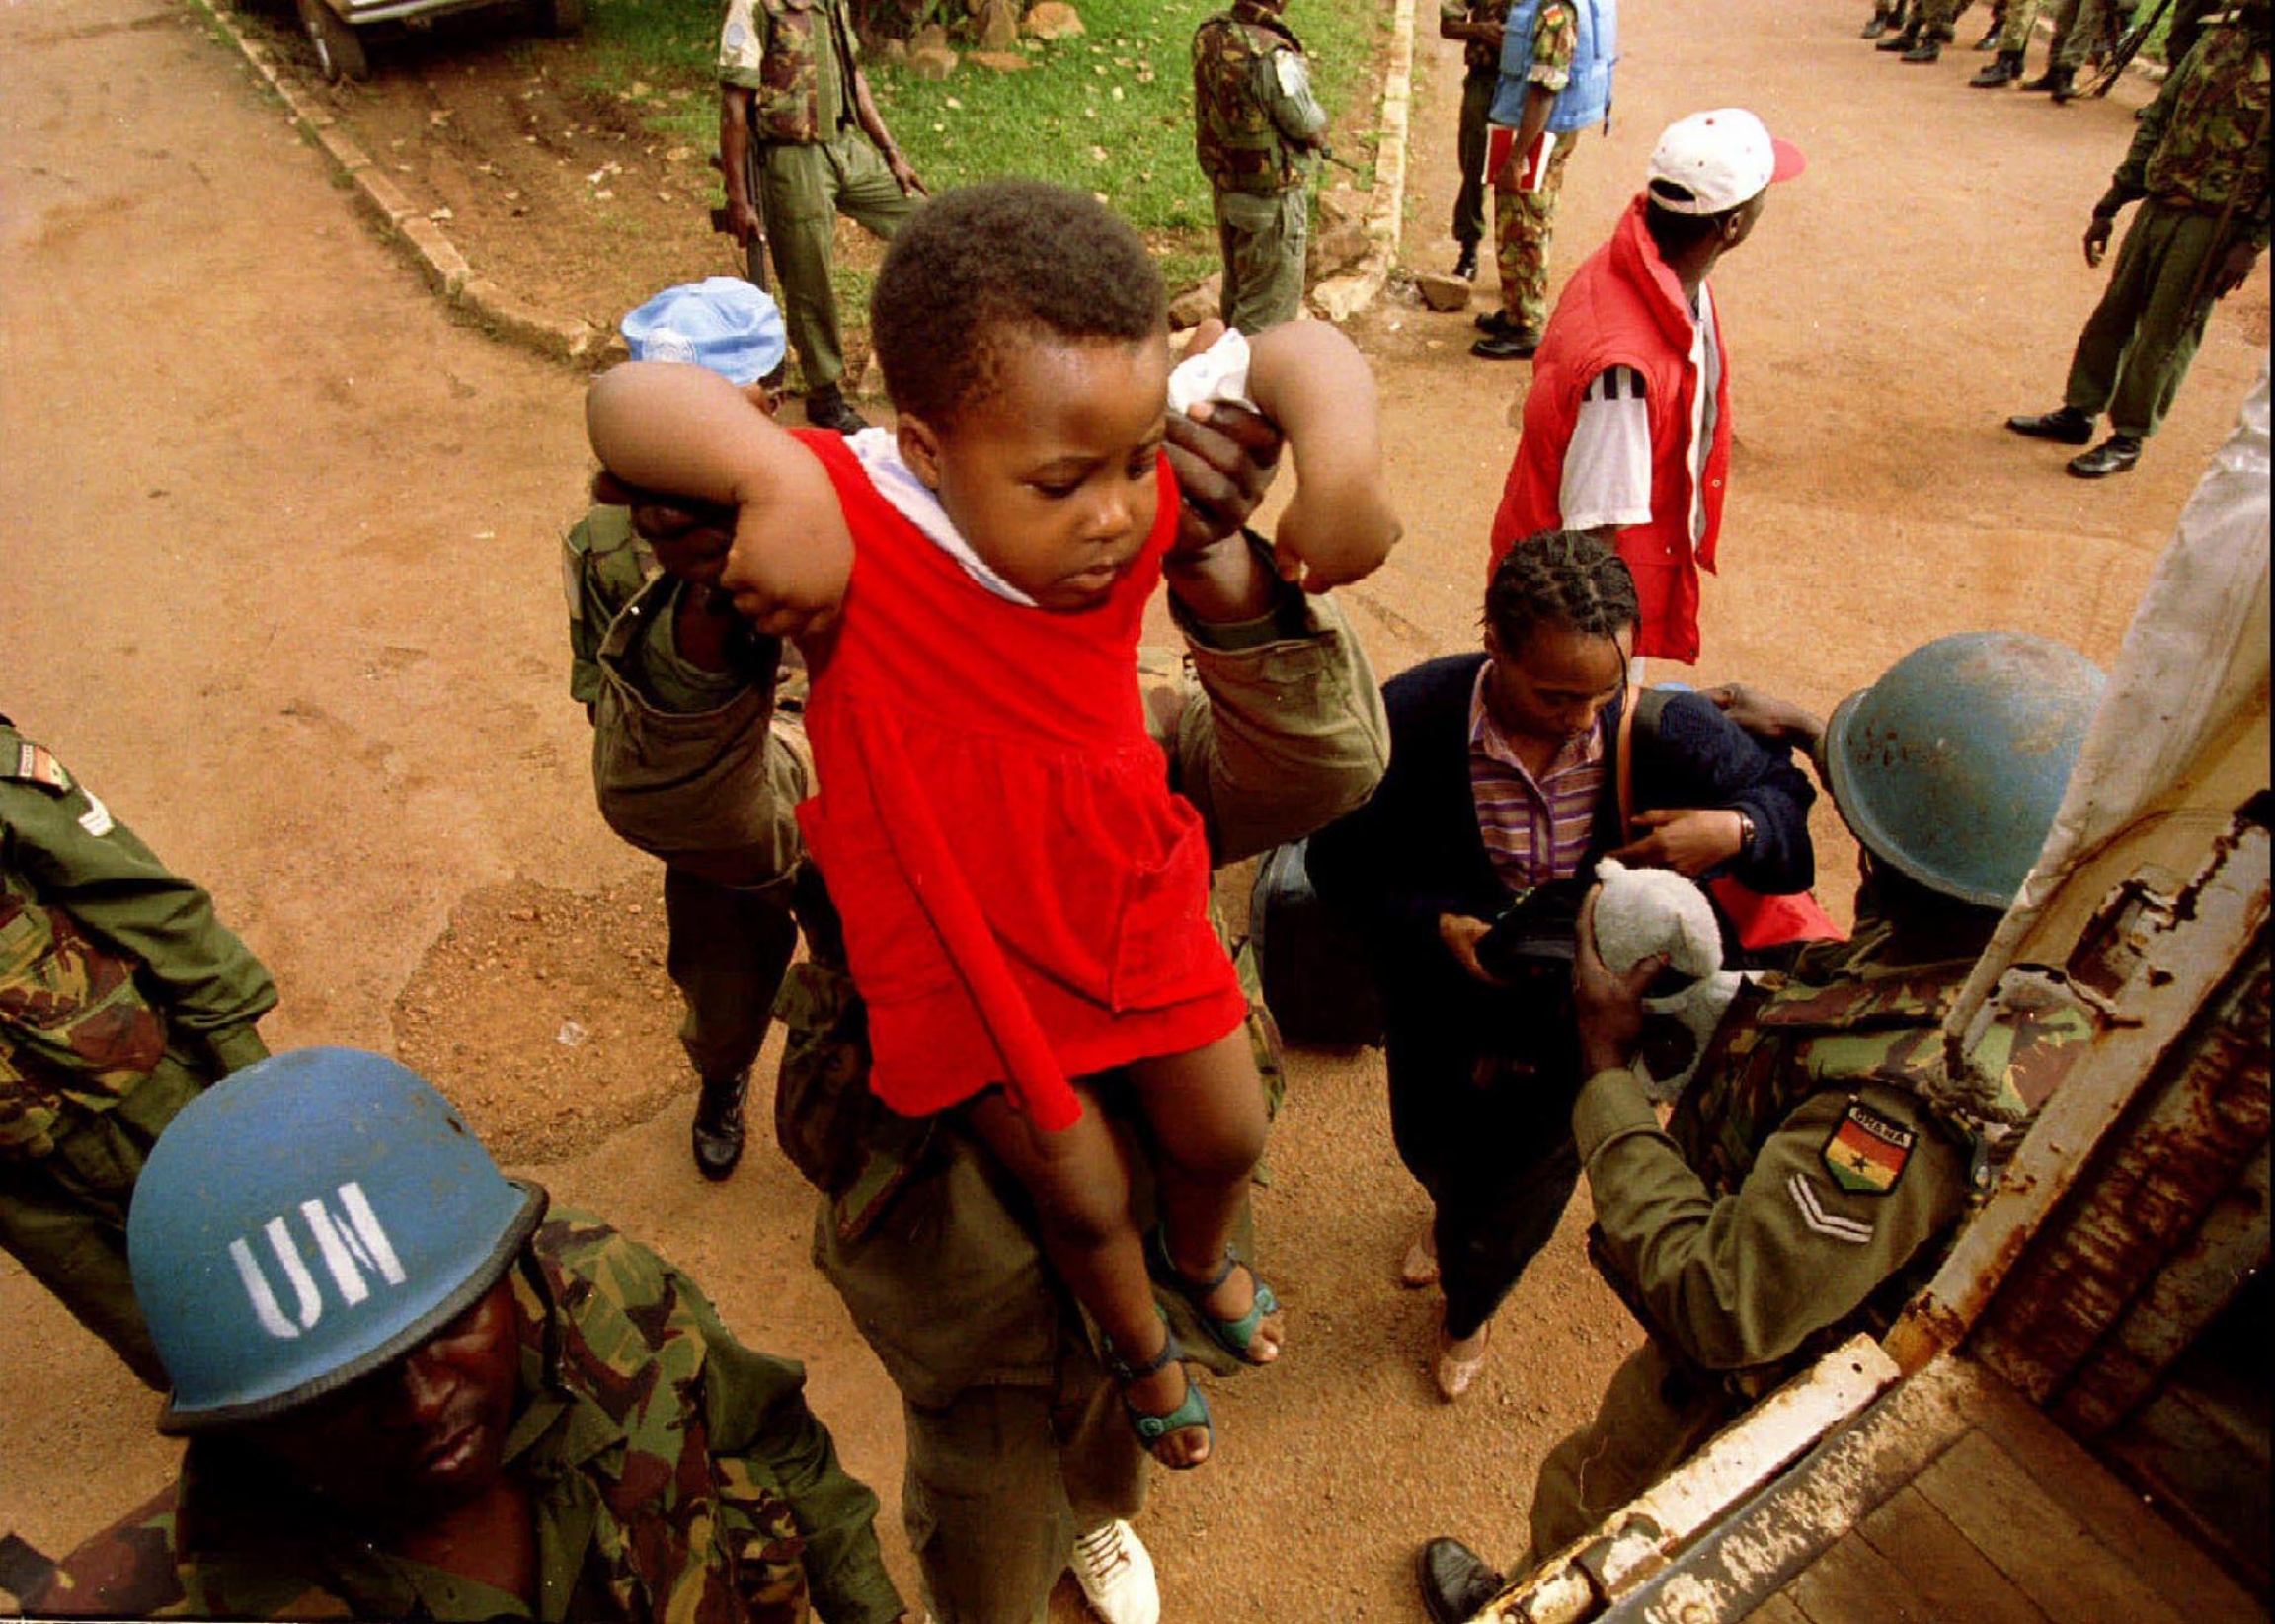 UN peacekeepers hold up a child.